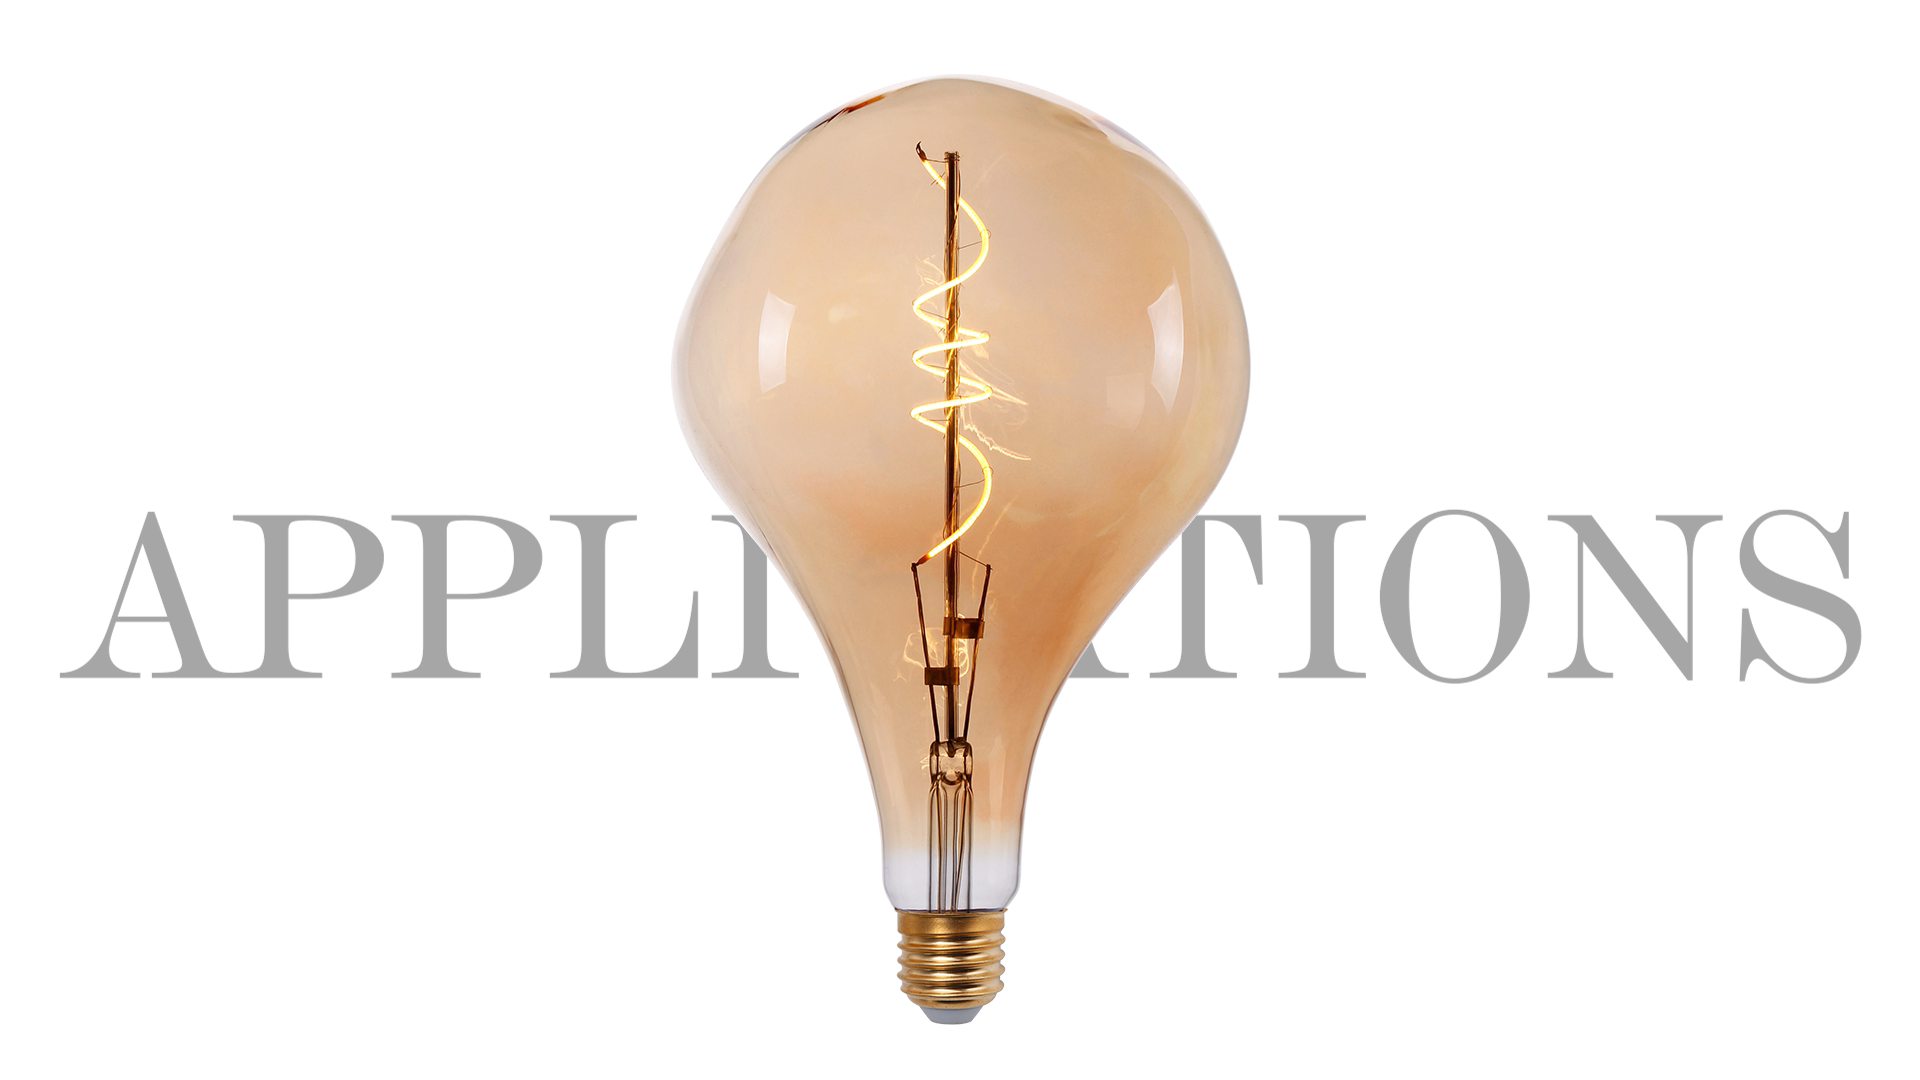 G200 PS160 BT180 4W Big Size Globe Shape Edison Vintage LED Amber Flexible Warm White E27 Decorative Oversize LED Filament Bulb